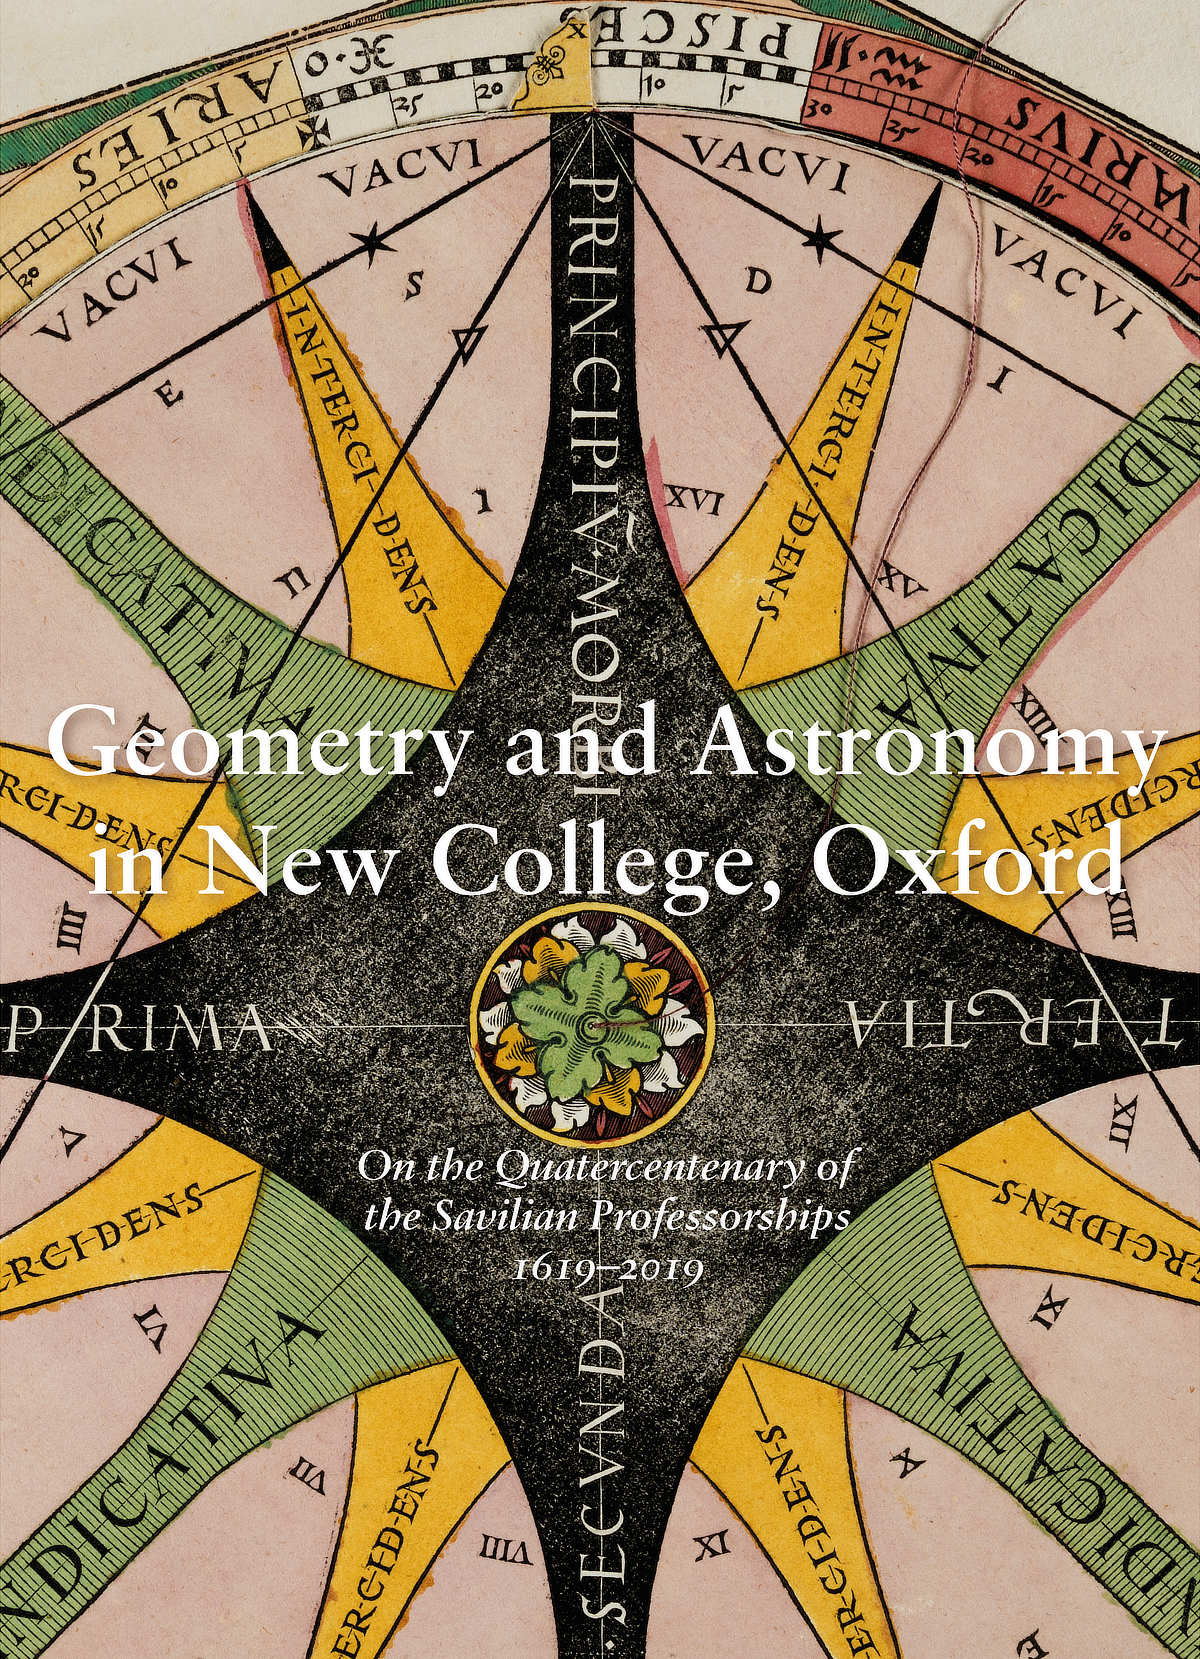 Geometry and Astronomy in New College, Oxford (front cover)